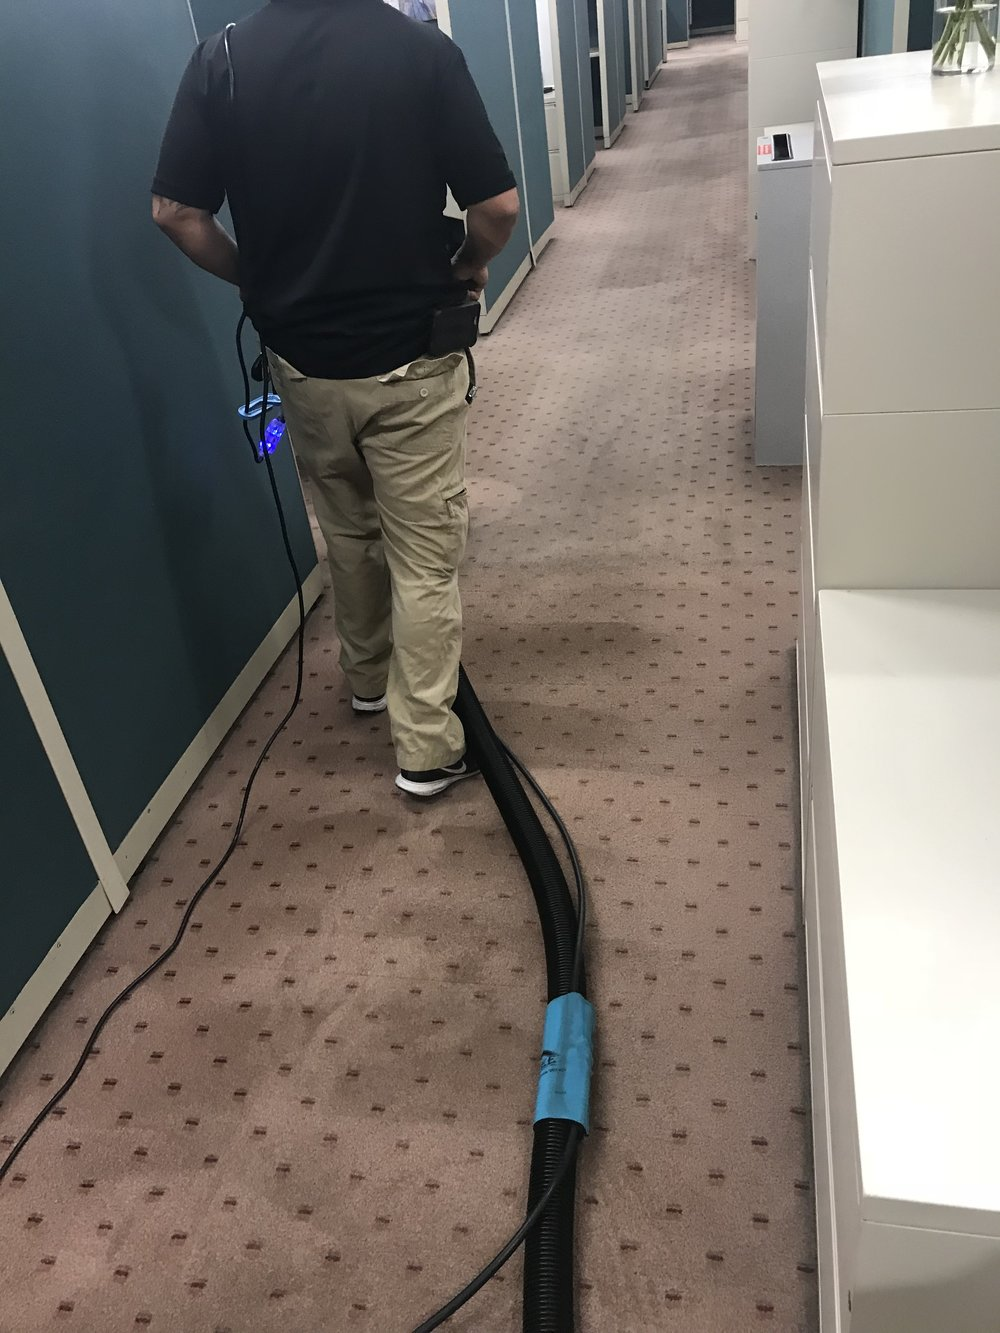 Rotary Extraction Cleaning Method (carpet has not been properly cleaned for 10+ years)